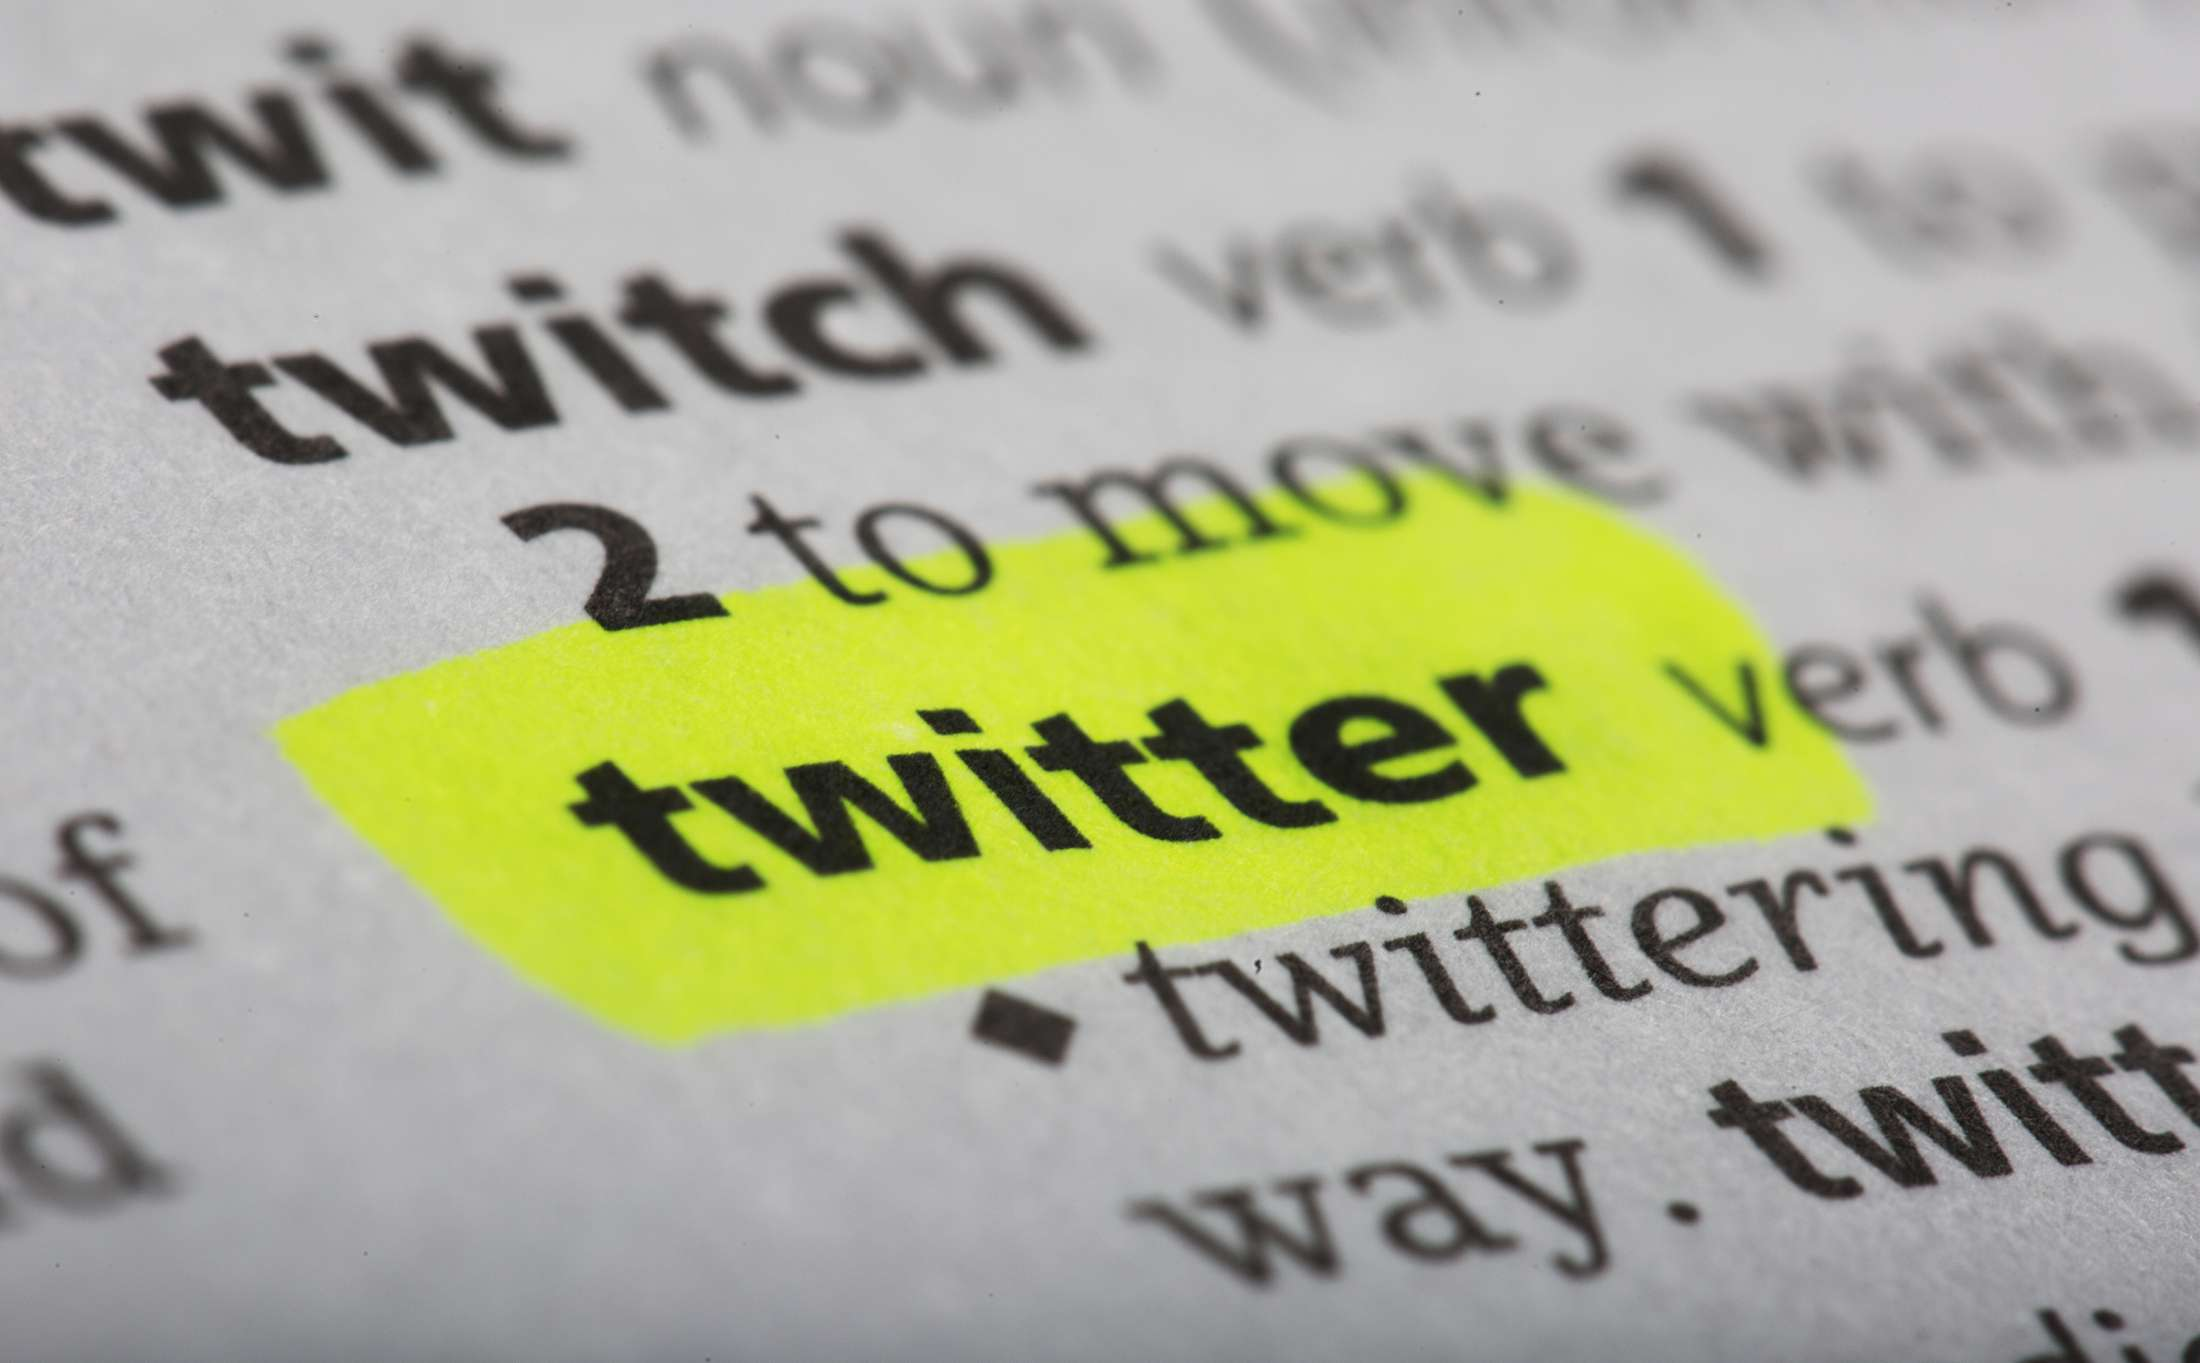 The word 'Twitter' highlighted on a dictionary page.